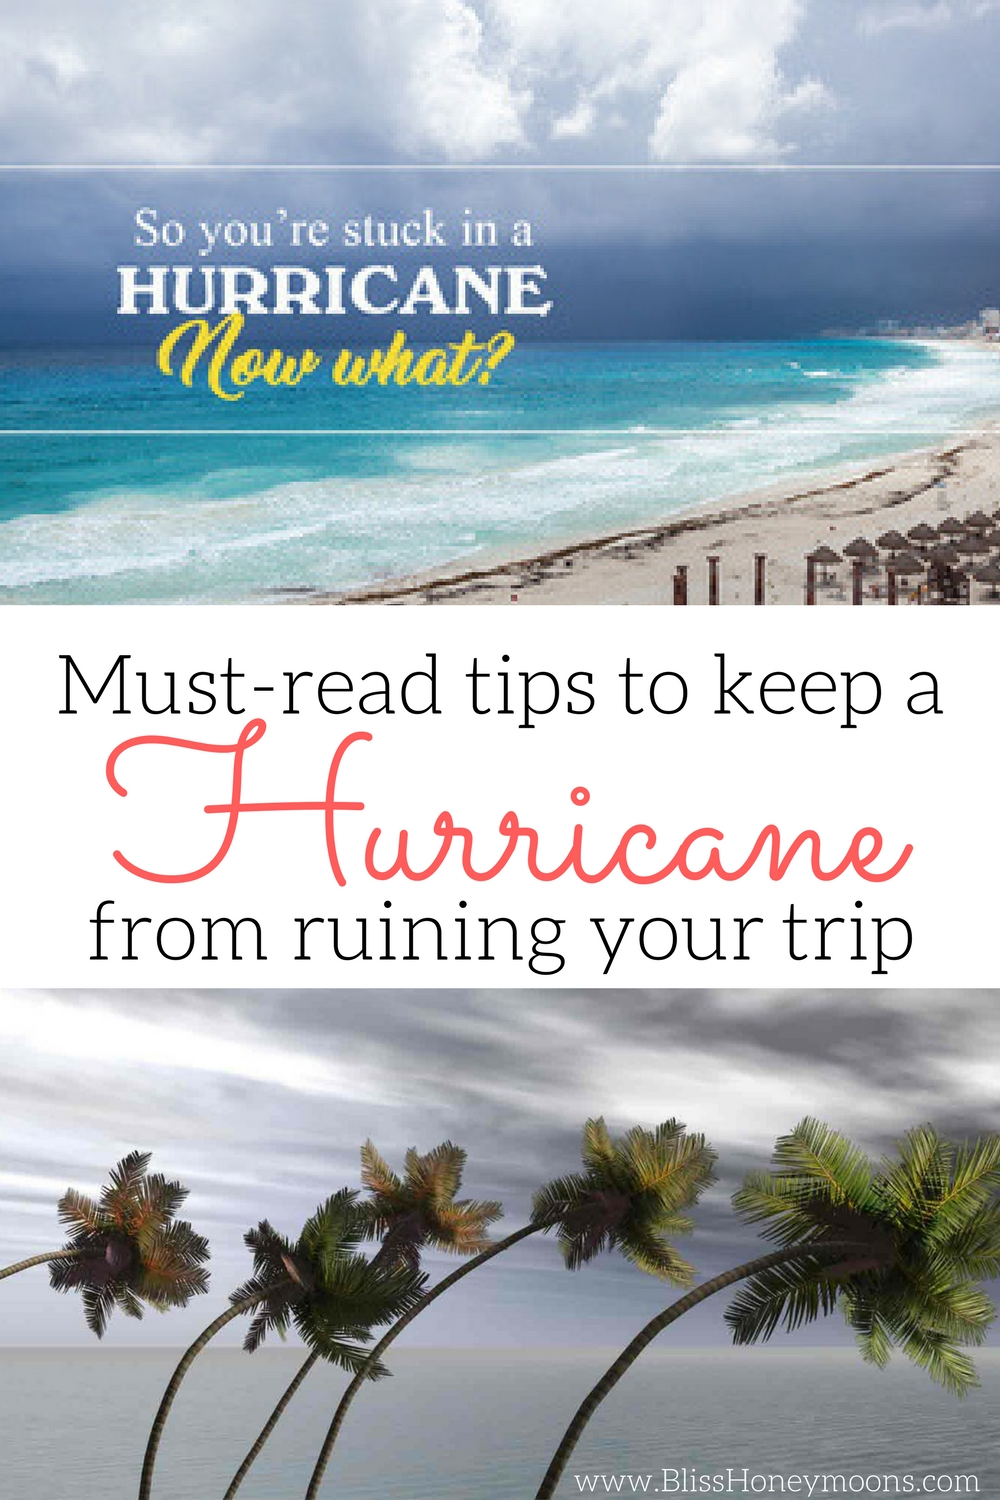 Hurricane when traveling, hurricane while traveling, what about hurricanes and my destination wedding, avoid hurricane destination wedding, hurricane destination wedding, hurricane honeymoon, hurricane what to do when traveling, travel tips Bliss Honeymoons